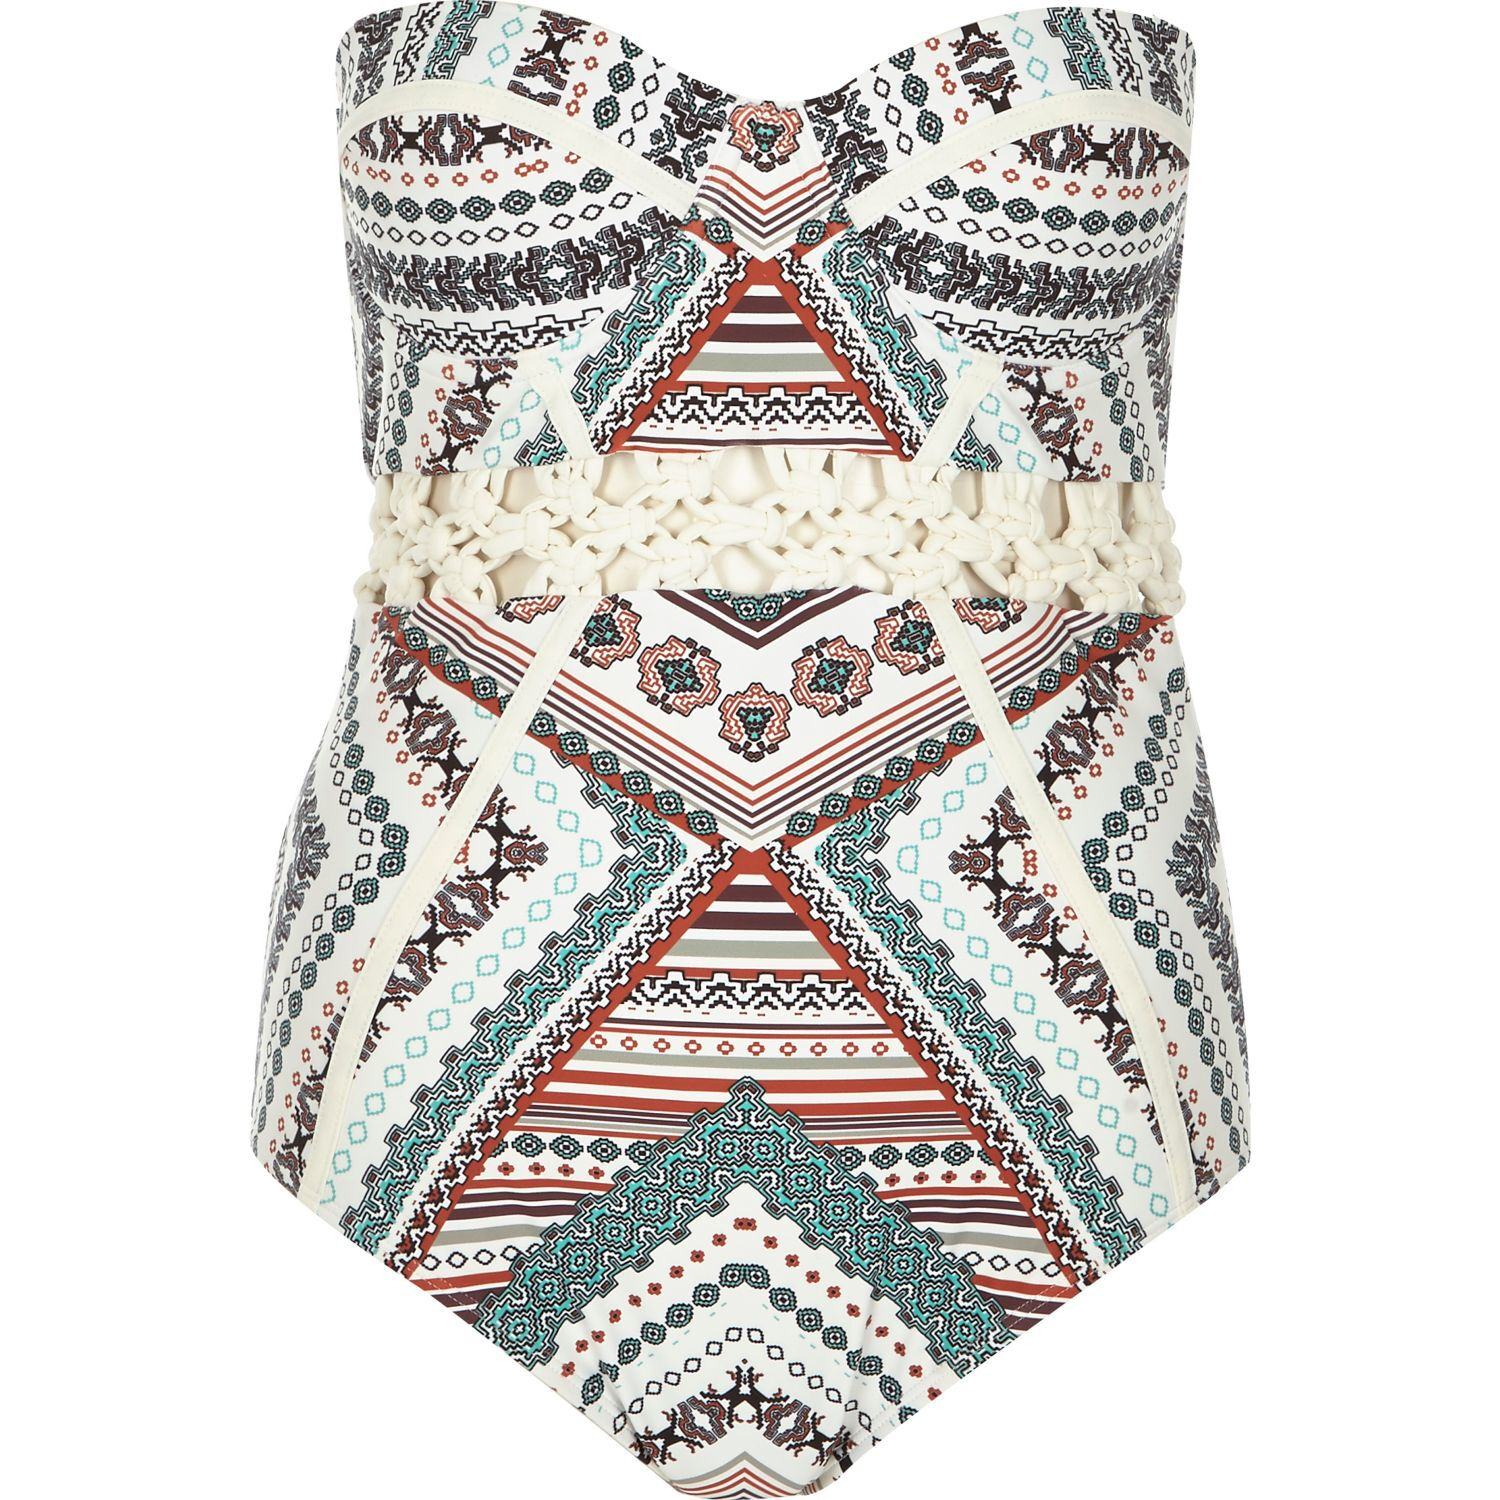 River Island Creme Tile Print Print Print Macrame Bustier Swimsuit NEW US 4 SOLD OUT 87d2ff